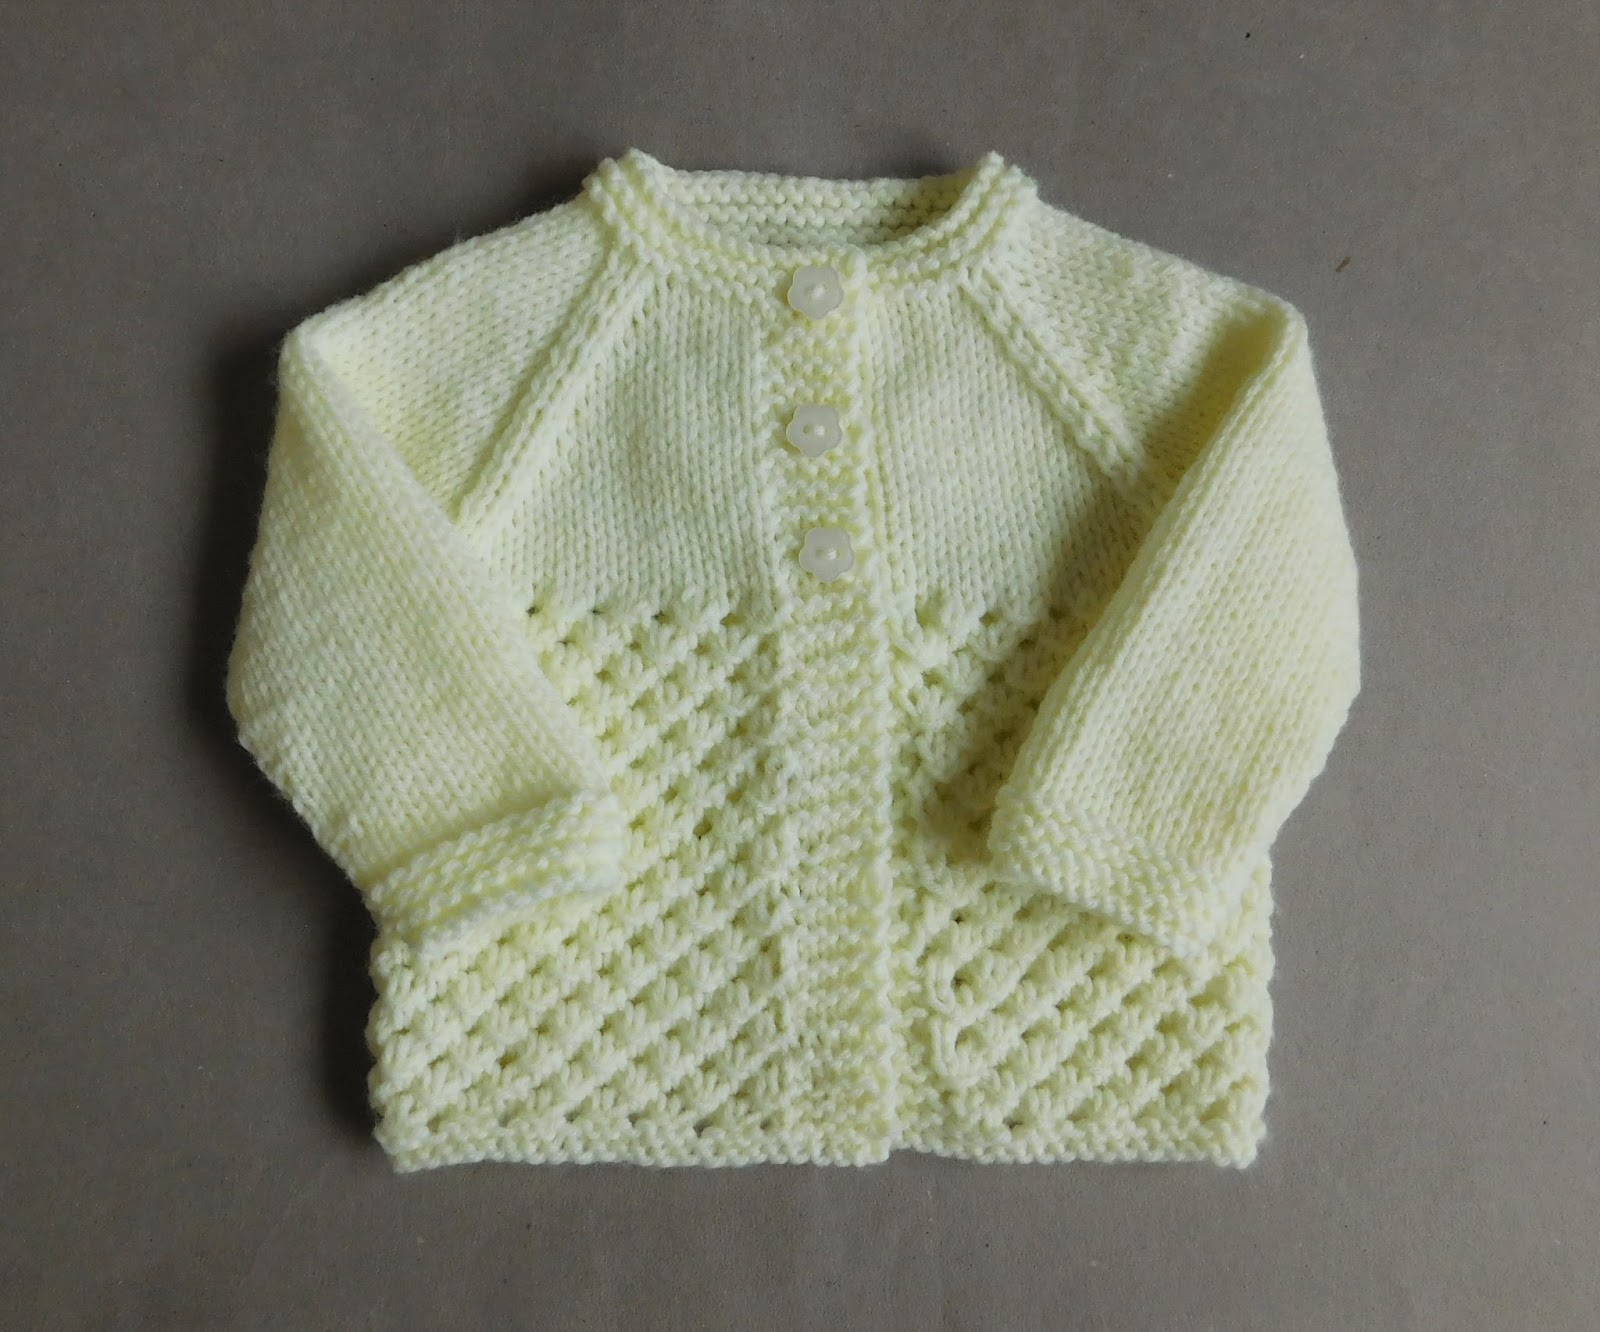 How To Increase Stitches In Knitting Sleeves : mariannas lazy daisy days: Danika Baby Jacket